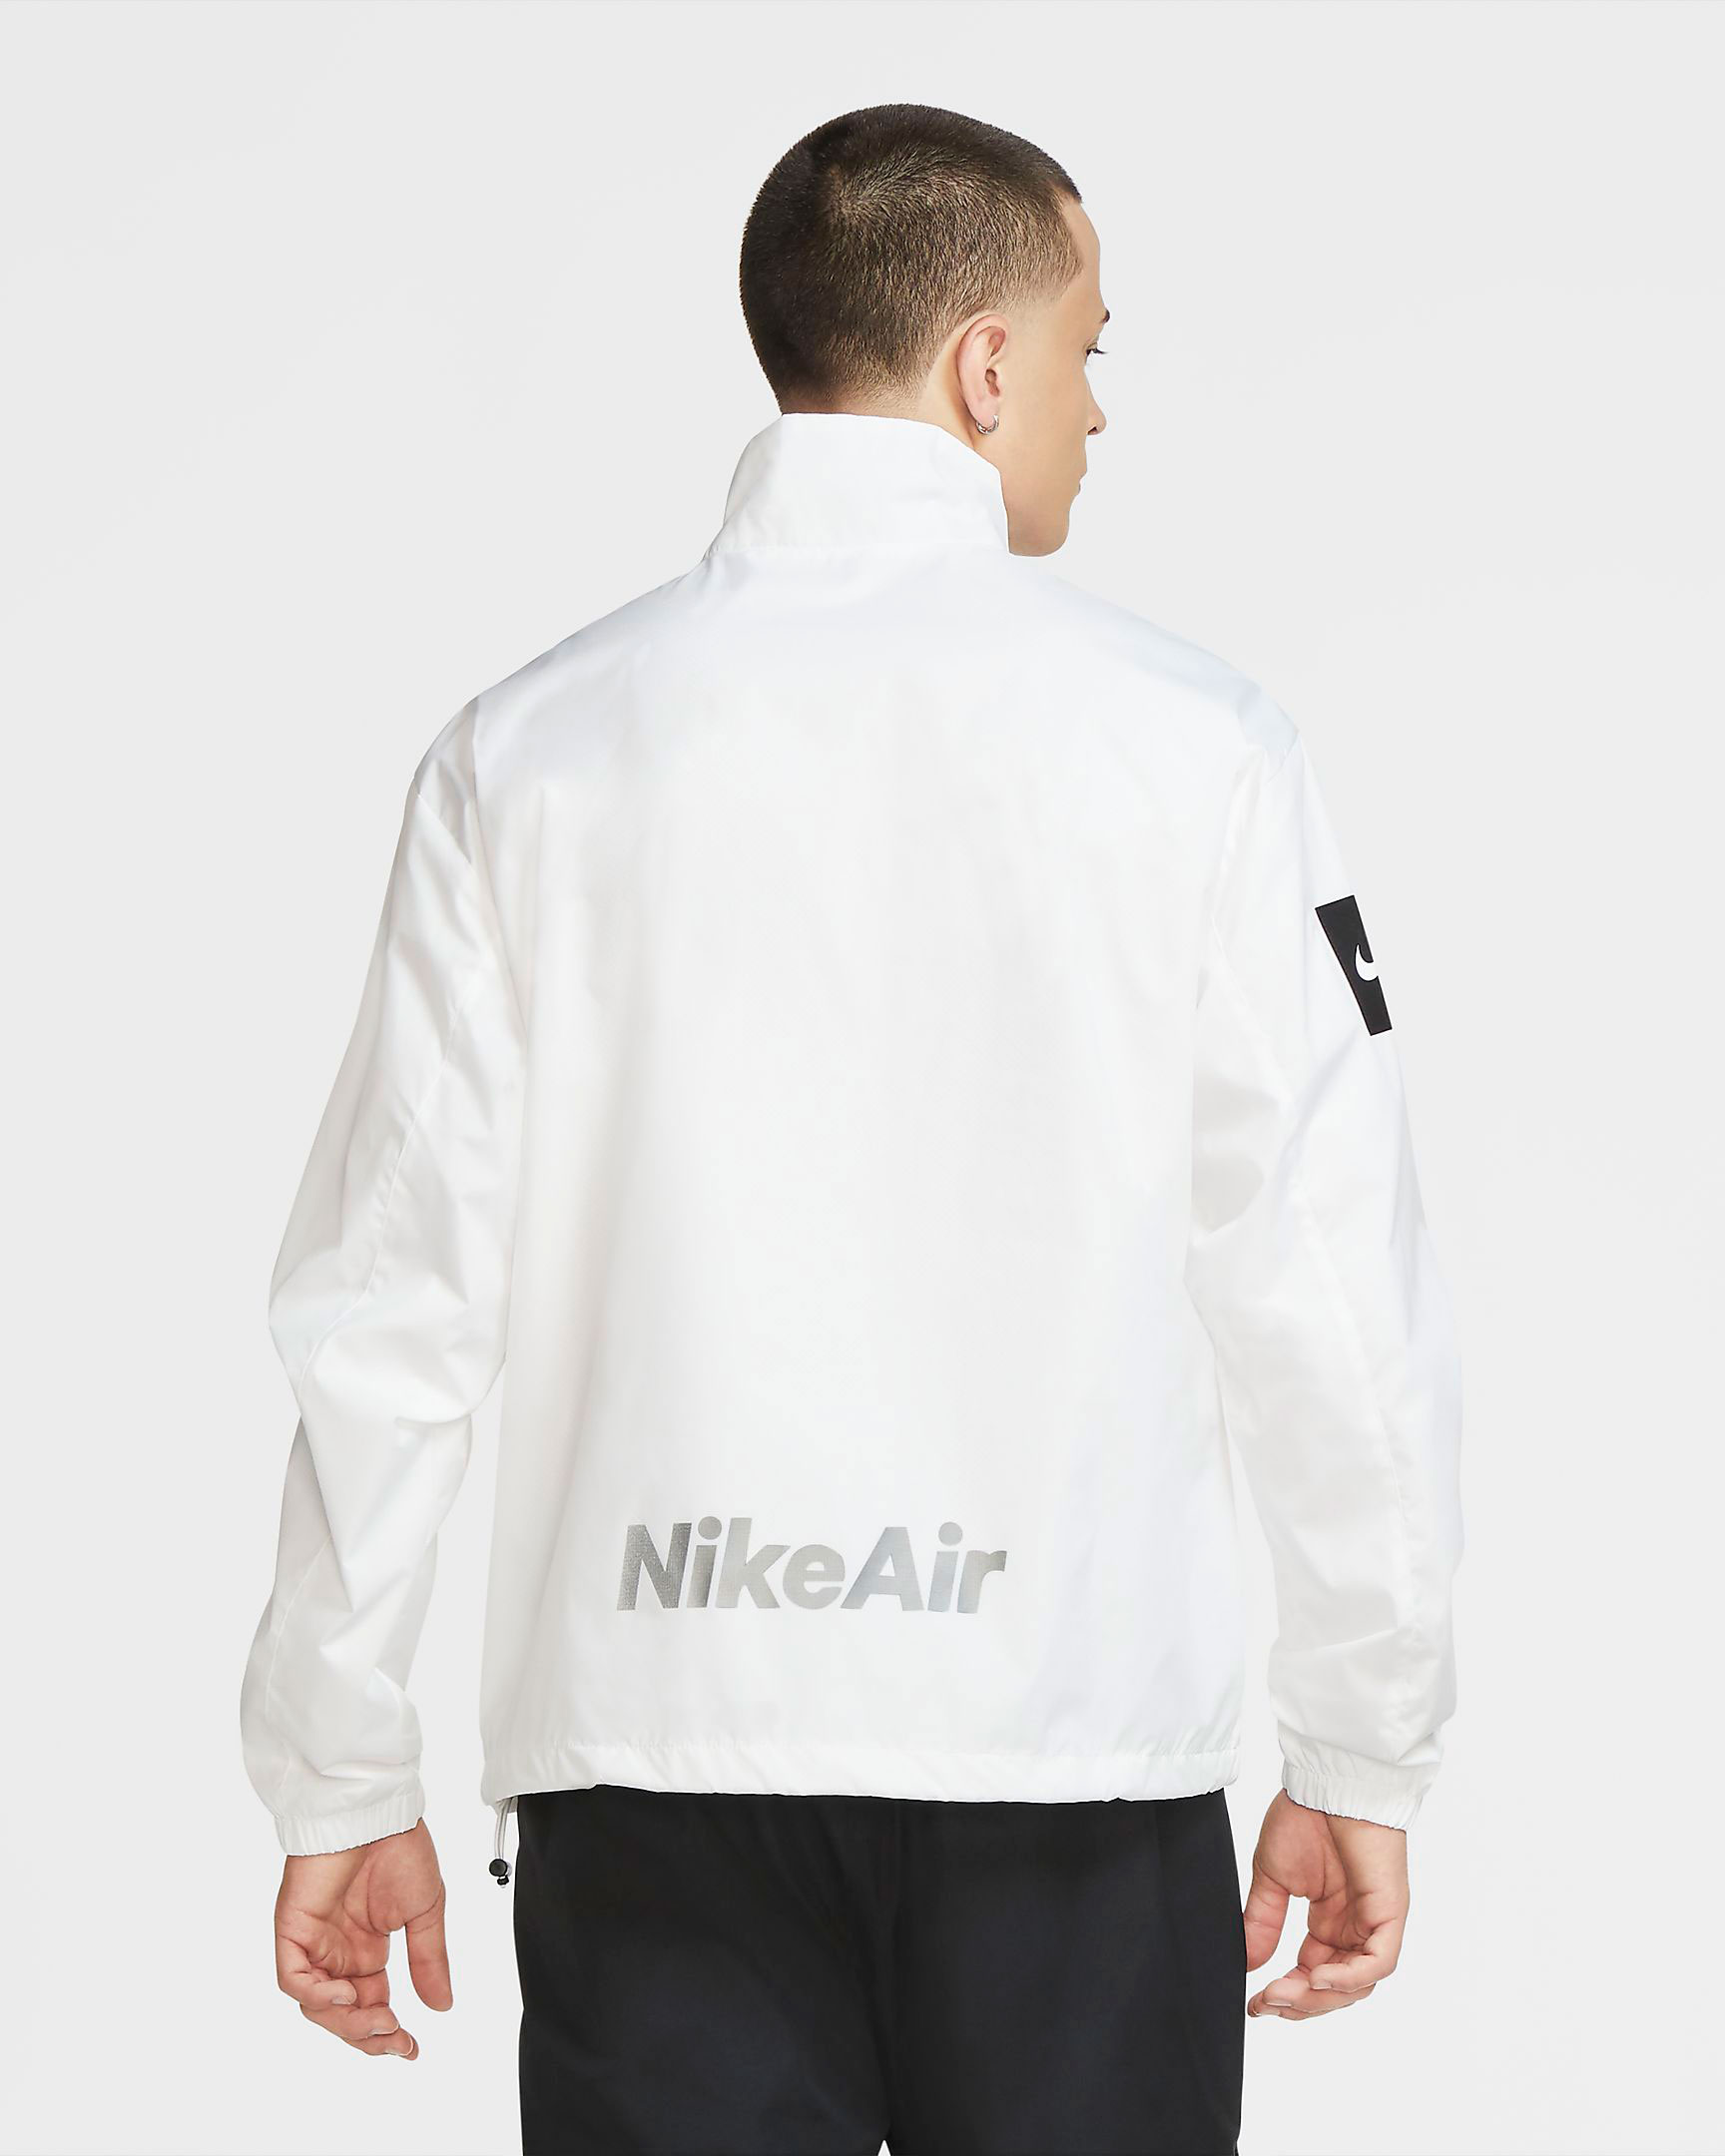 nike-air-utility-reflective-jacket-white-black-2